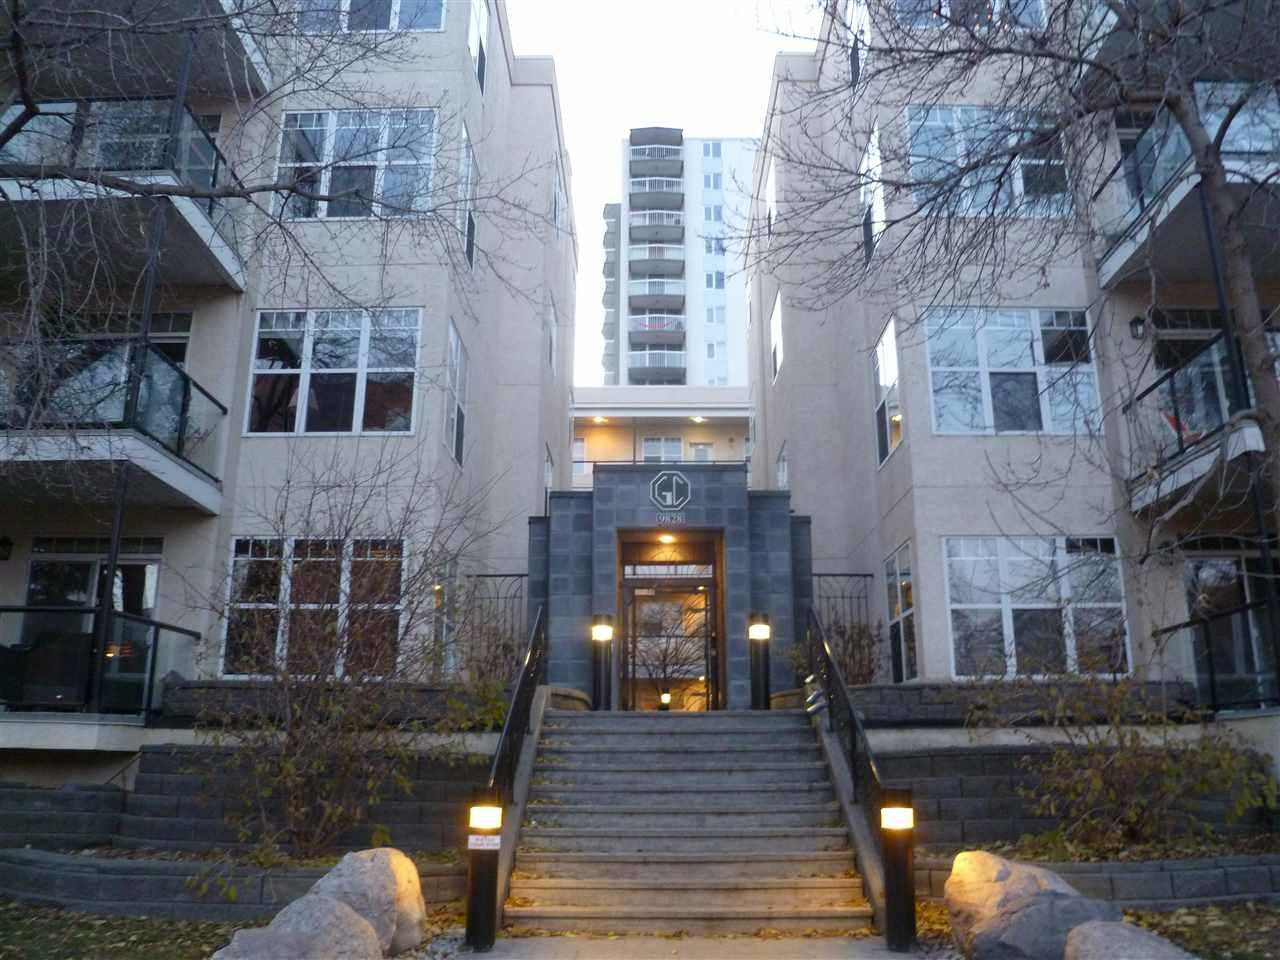 Once inside you will love this spacious 1000 square foot condo. West facing deck so there is a nice view of the valley. 2 bedroom one bath with separate tub and shower. Large bar. Laminate flooring. Main floor unit for easy access. 2 underground parking stalls with large storage. Conveniently located near river valley and Jasper avenue, but far enough that it is quite quiet.